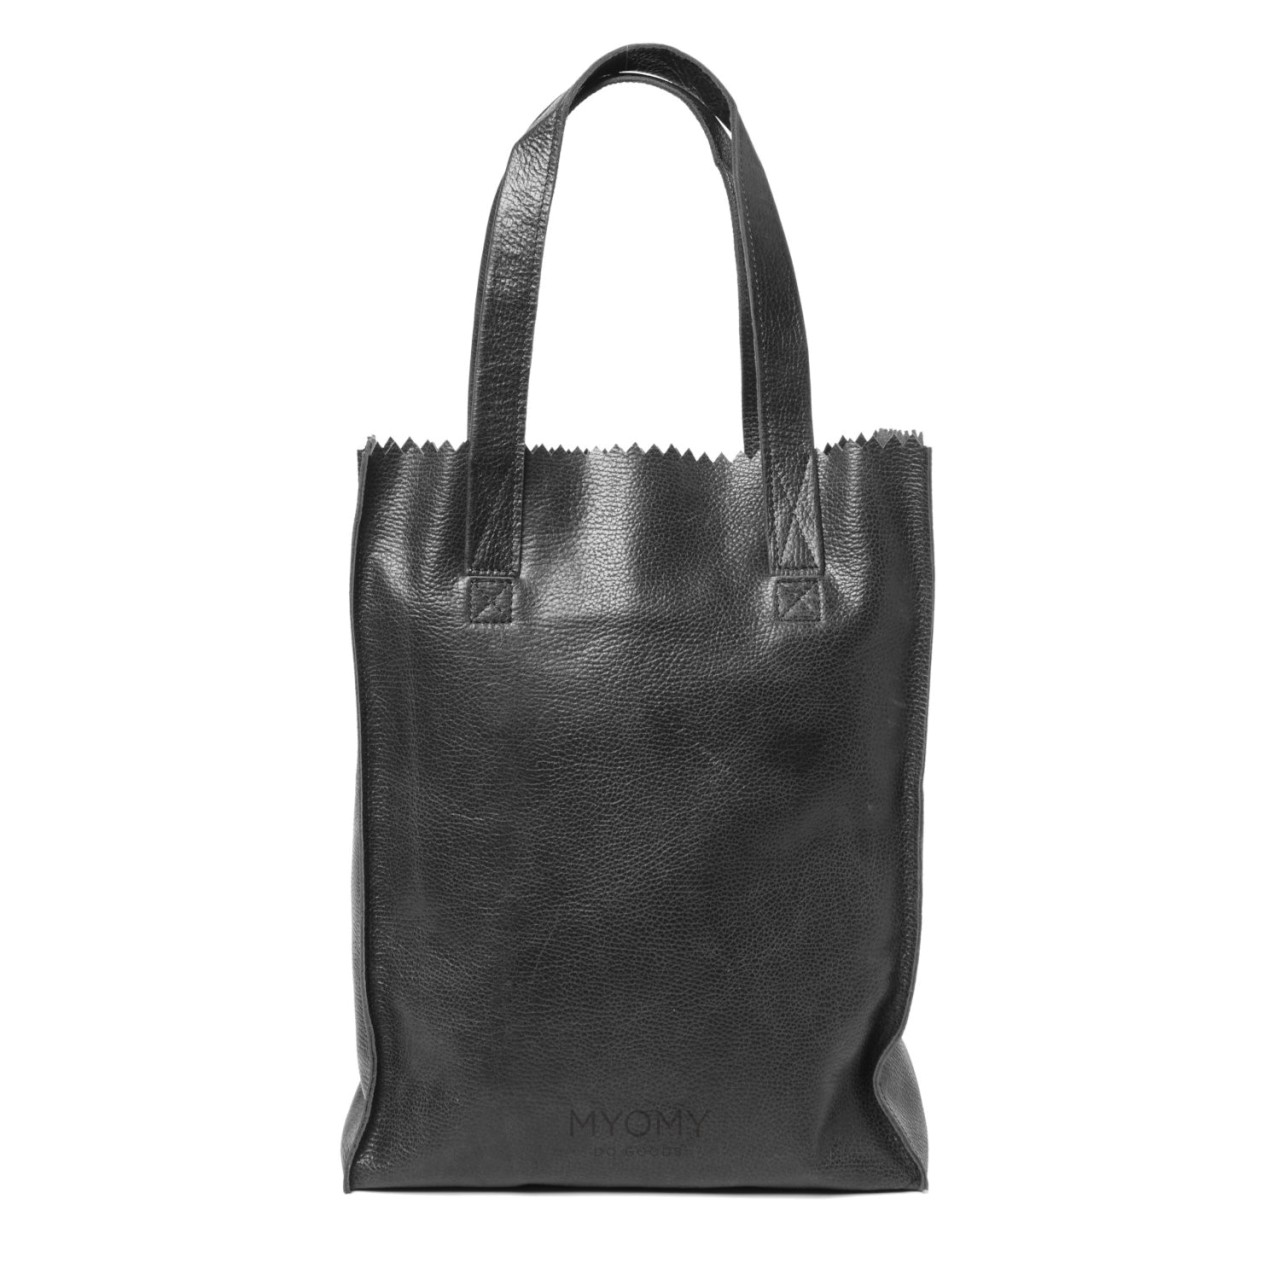 Myomy - My Paper Bag - Long handle zip - rambler black